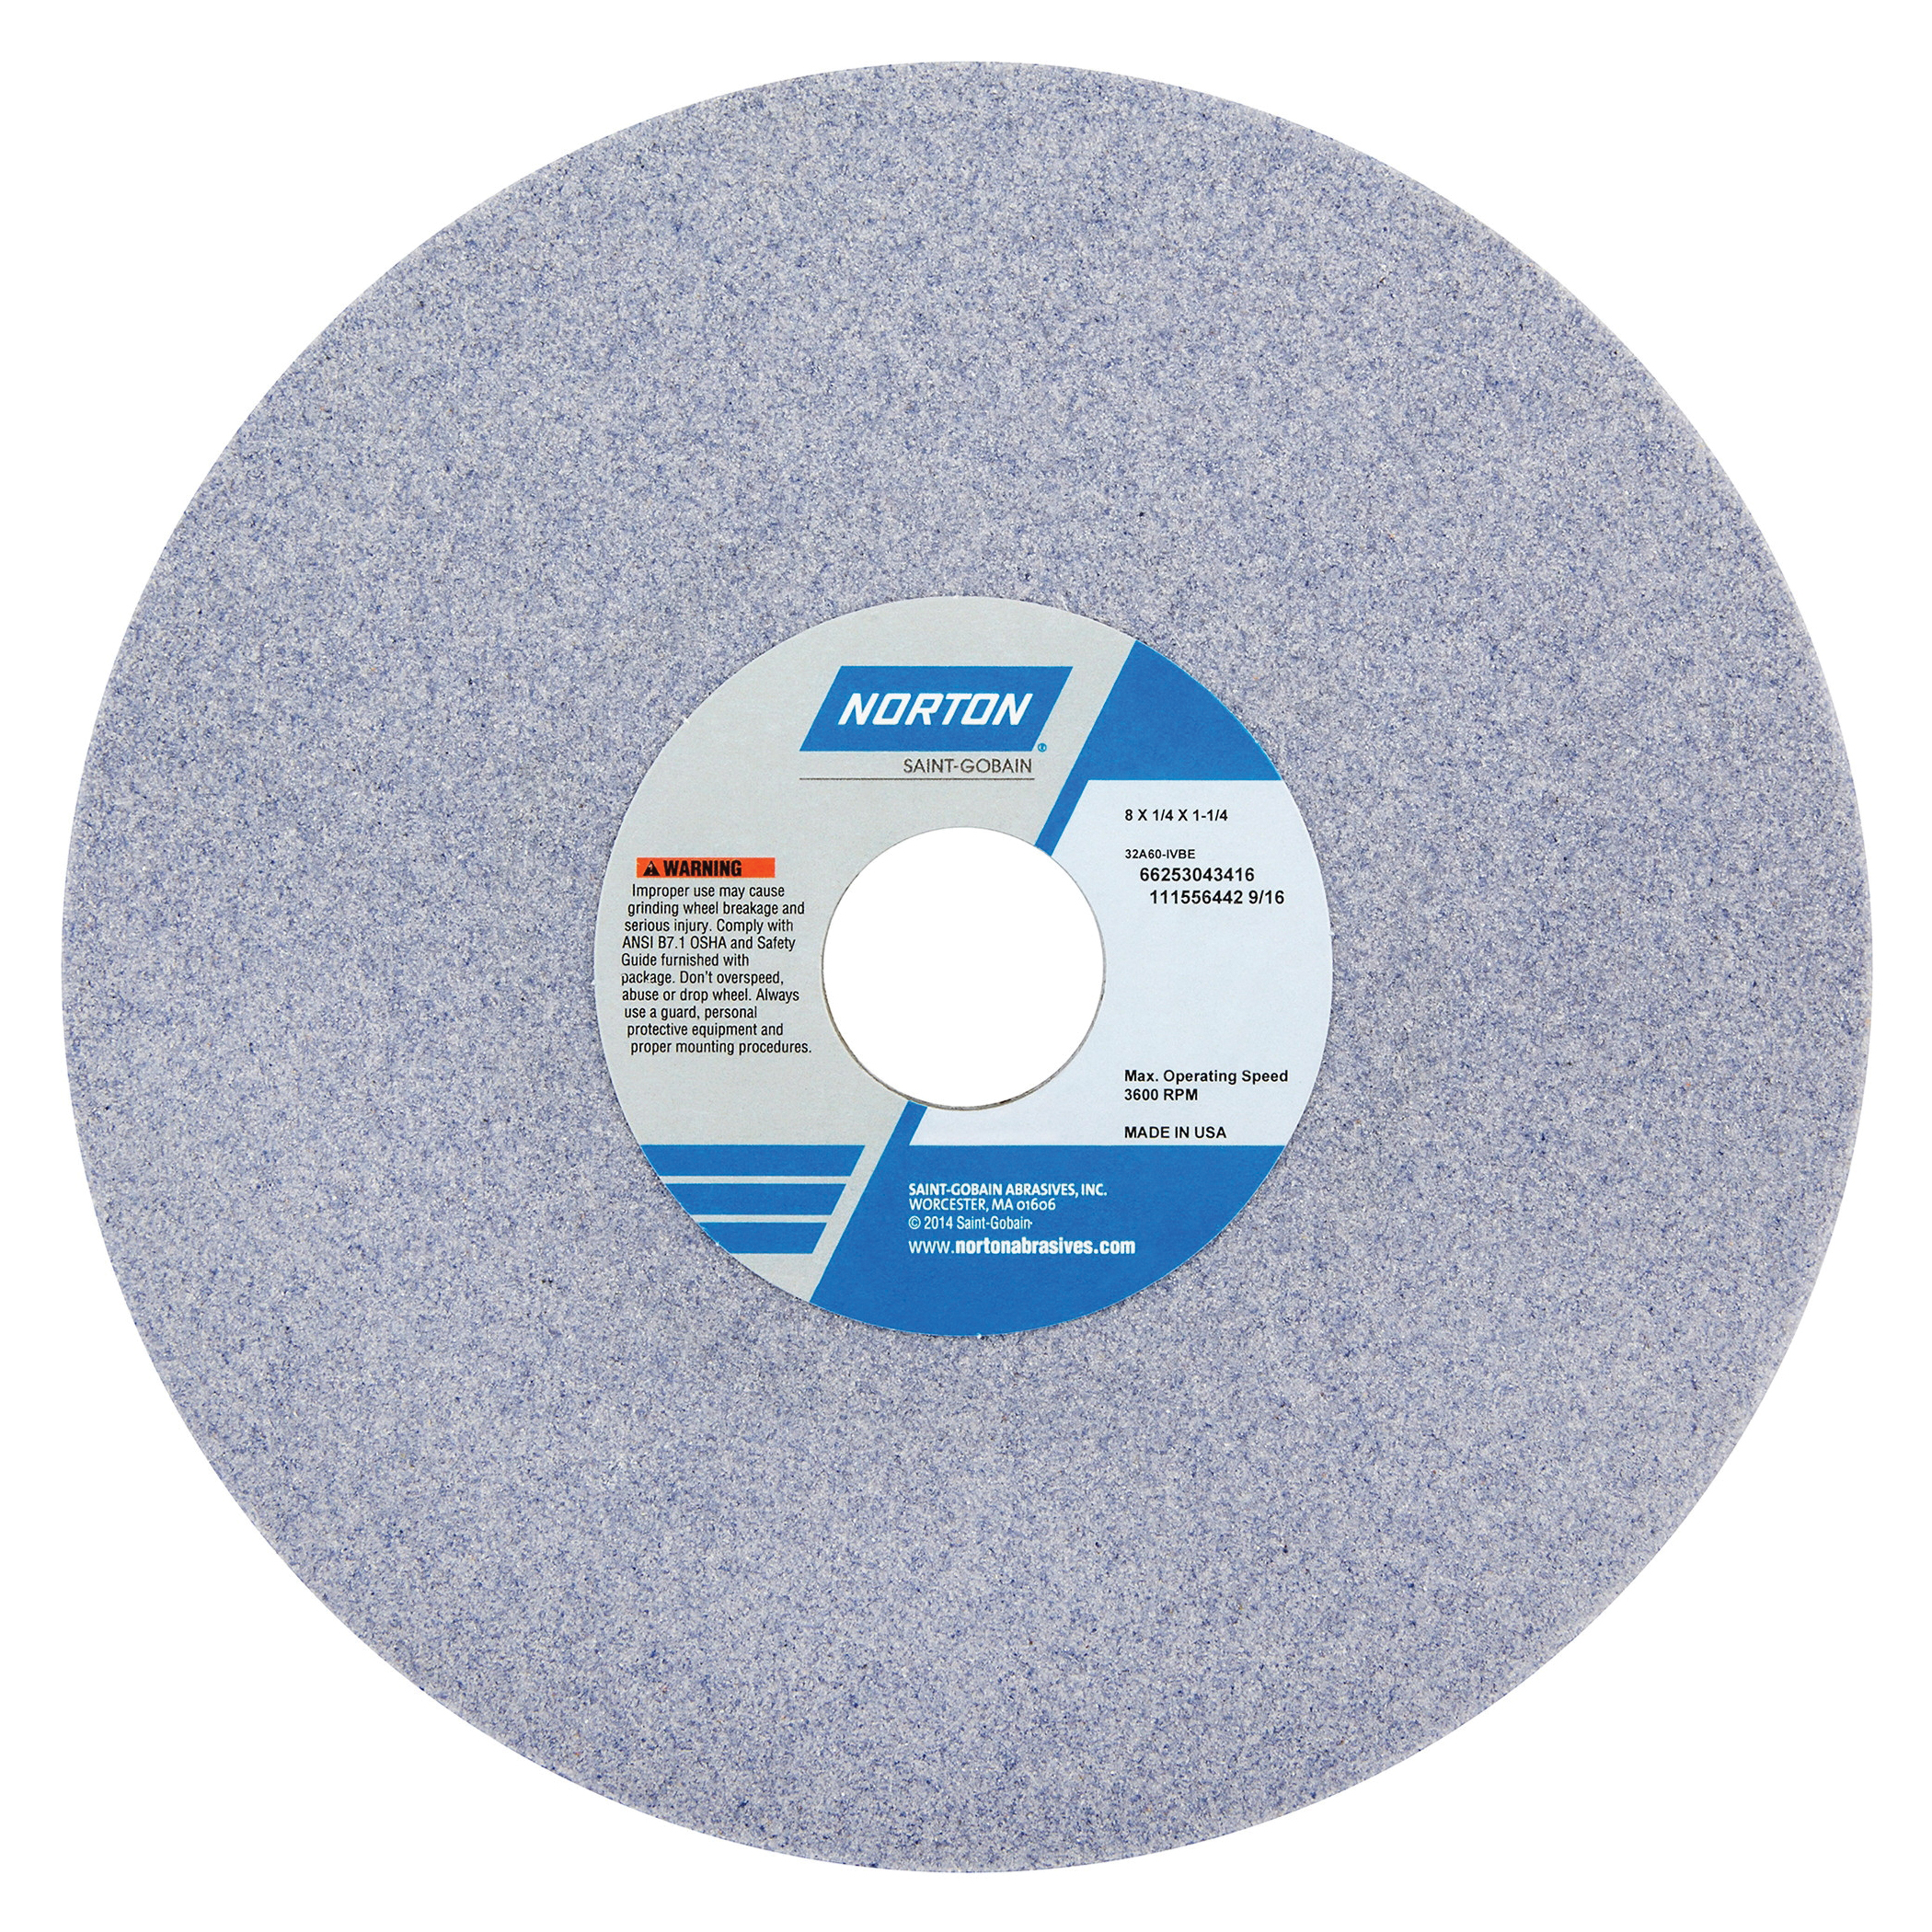 Norton® 66253043412 32A Straight Toolroom Wheel, 8 in Dia x 1/4 in THK, 1-1/4 in Center Hole, 46 Grit, Aluminum Oxide Abrasive